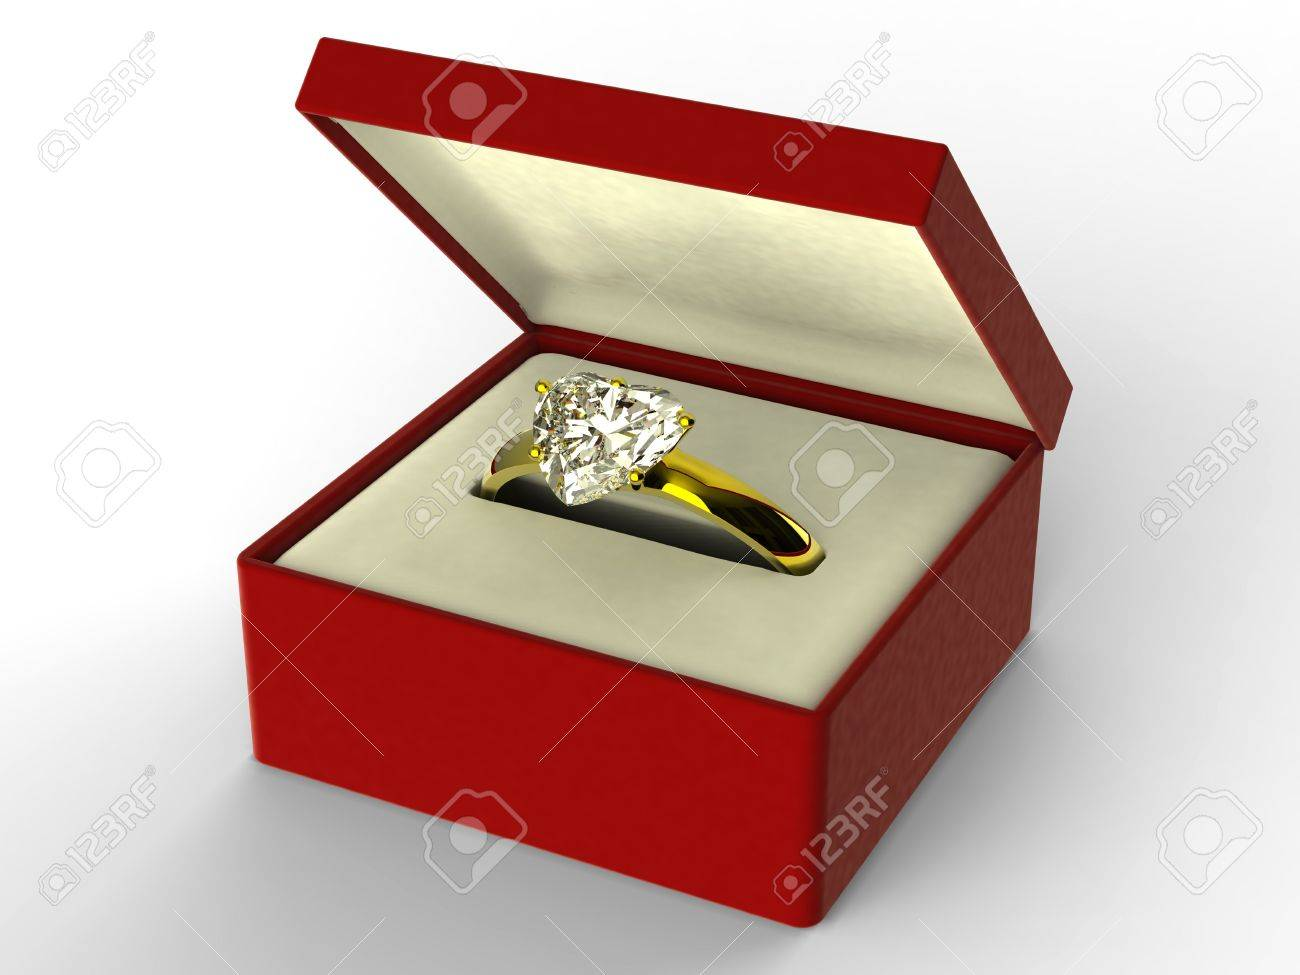 Golden Heart Shape Diamond Ring In Red Box Stock Photo  6103207